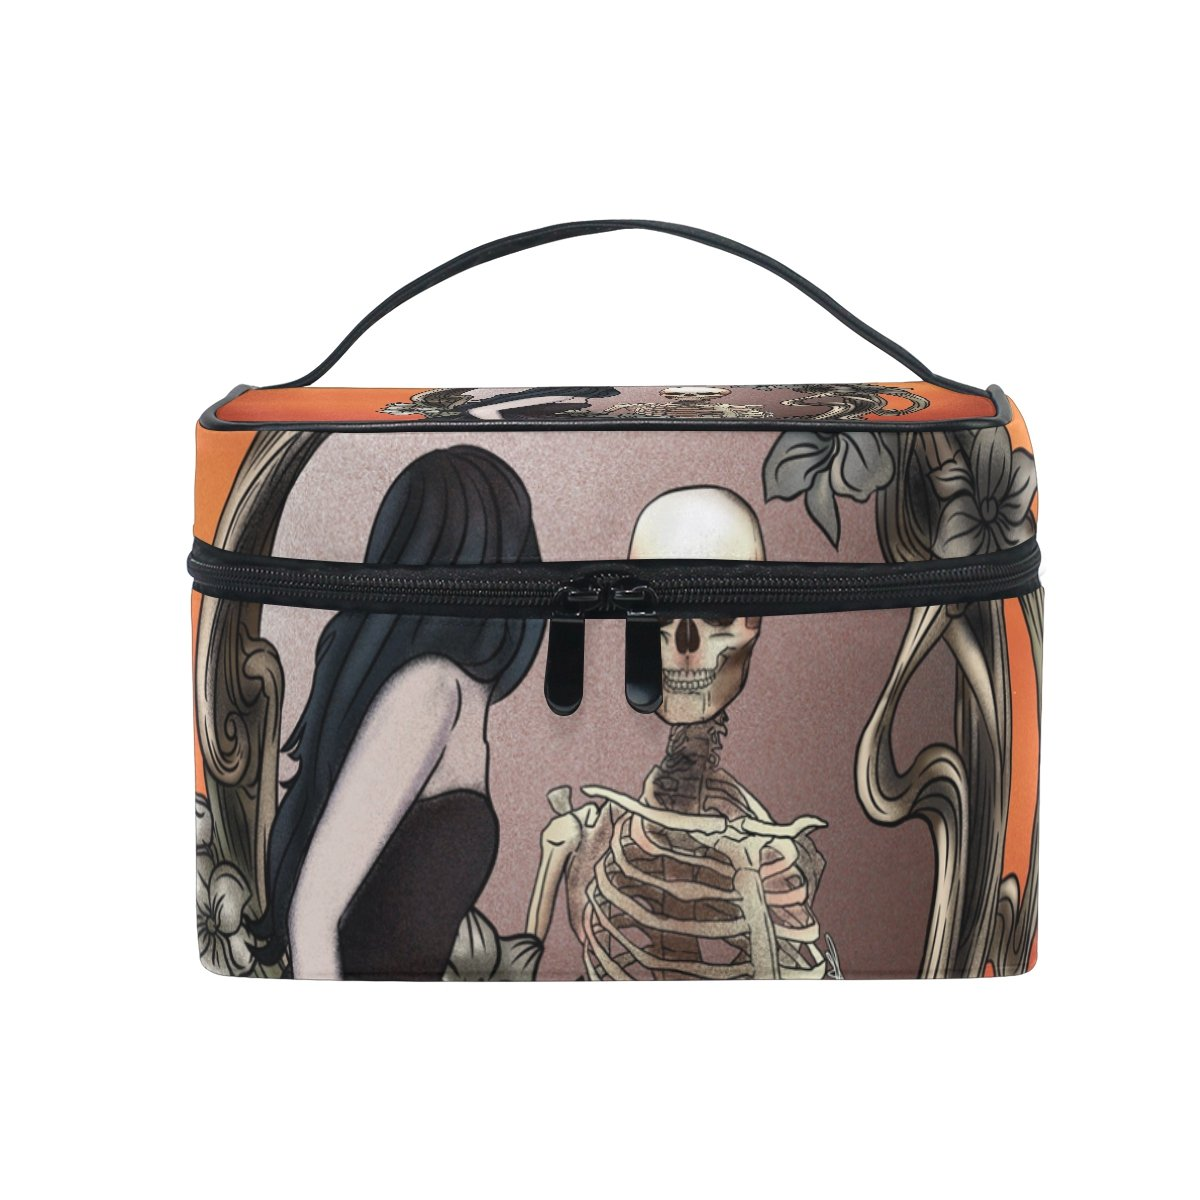 ALAZA Makeup Train Case Vintage Chic Floral Skull Mirror Queen Korean Carrying Portable Zip Travel Cosmetic Brush Bag Organizer Large for Girls Women